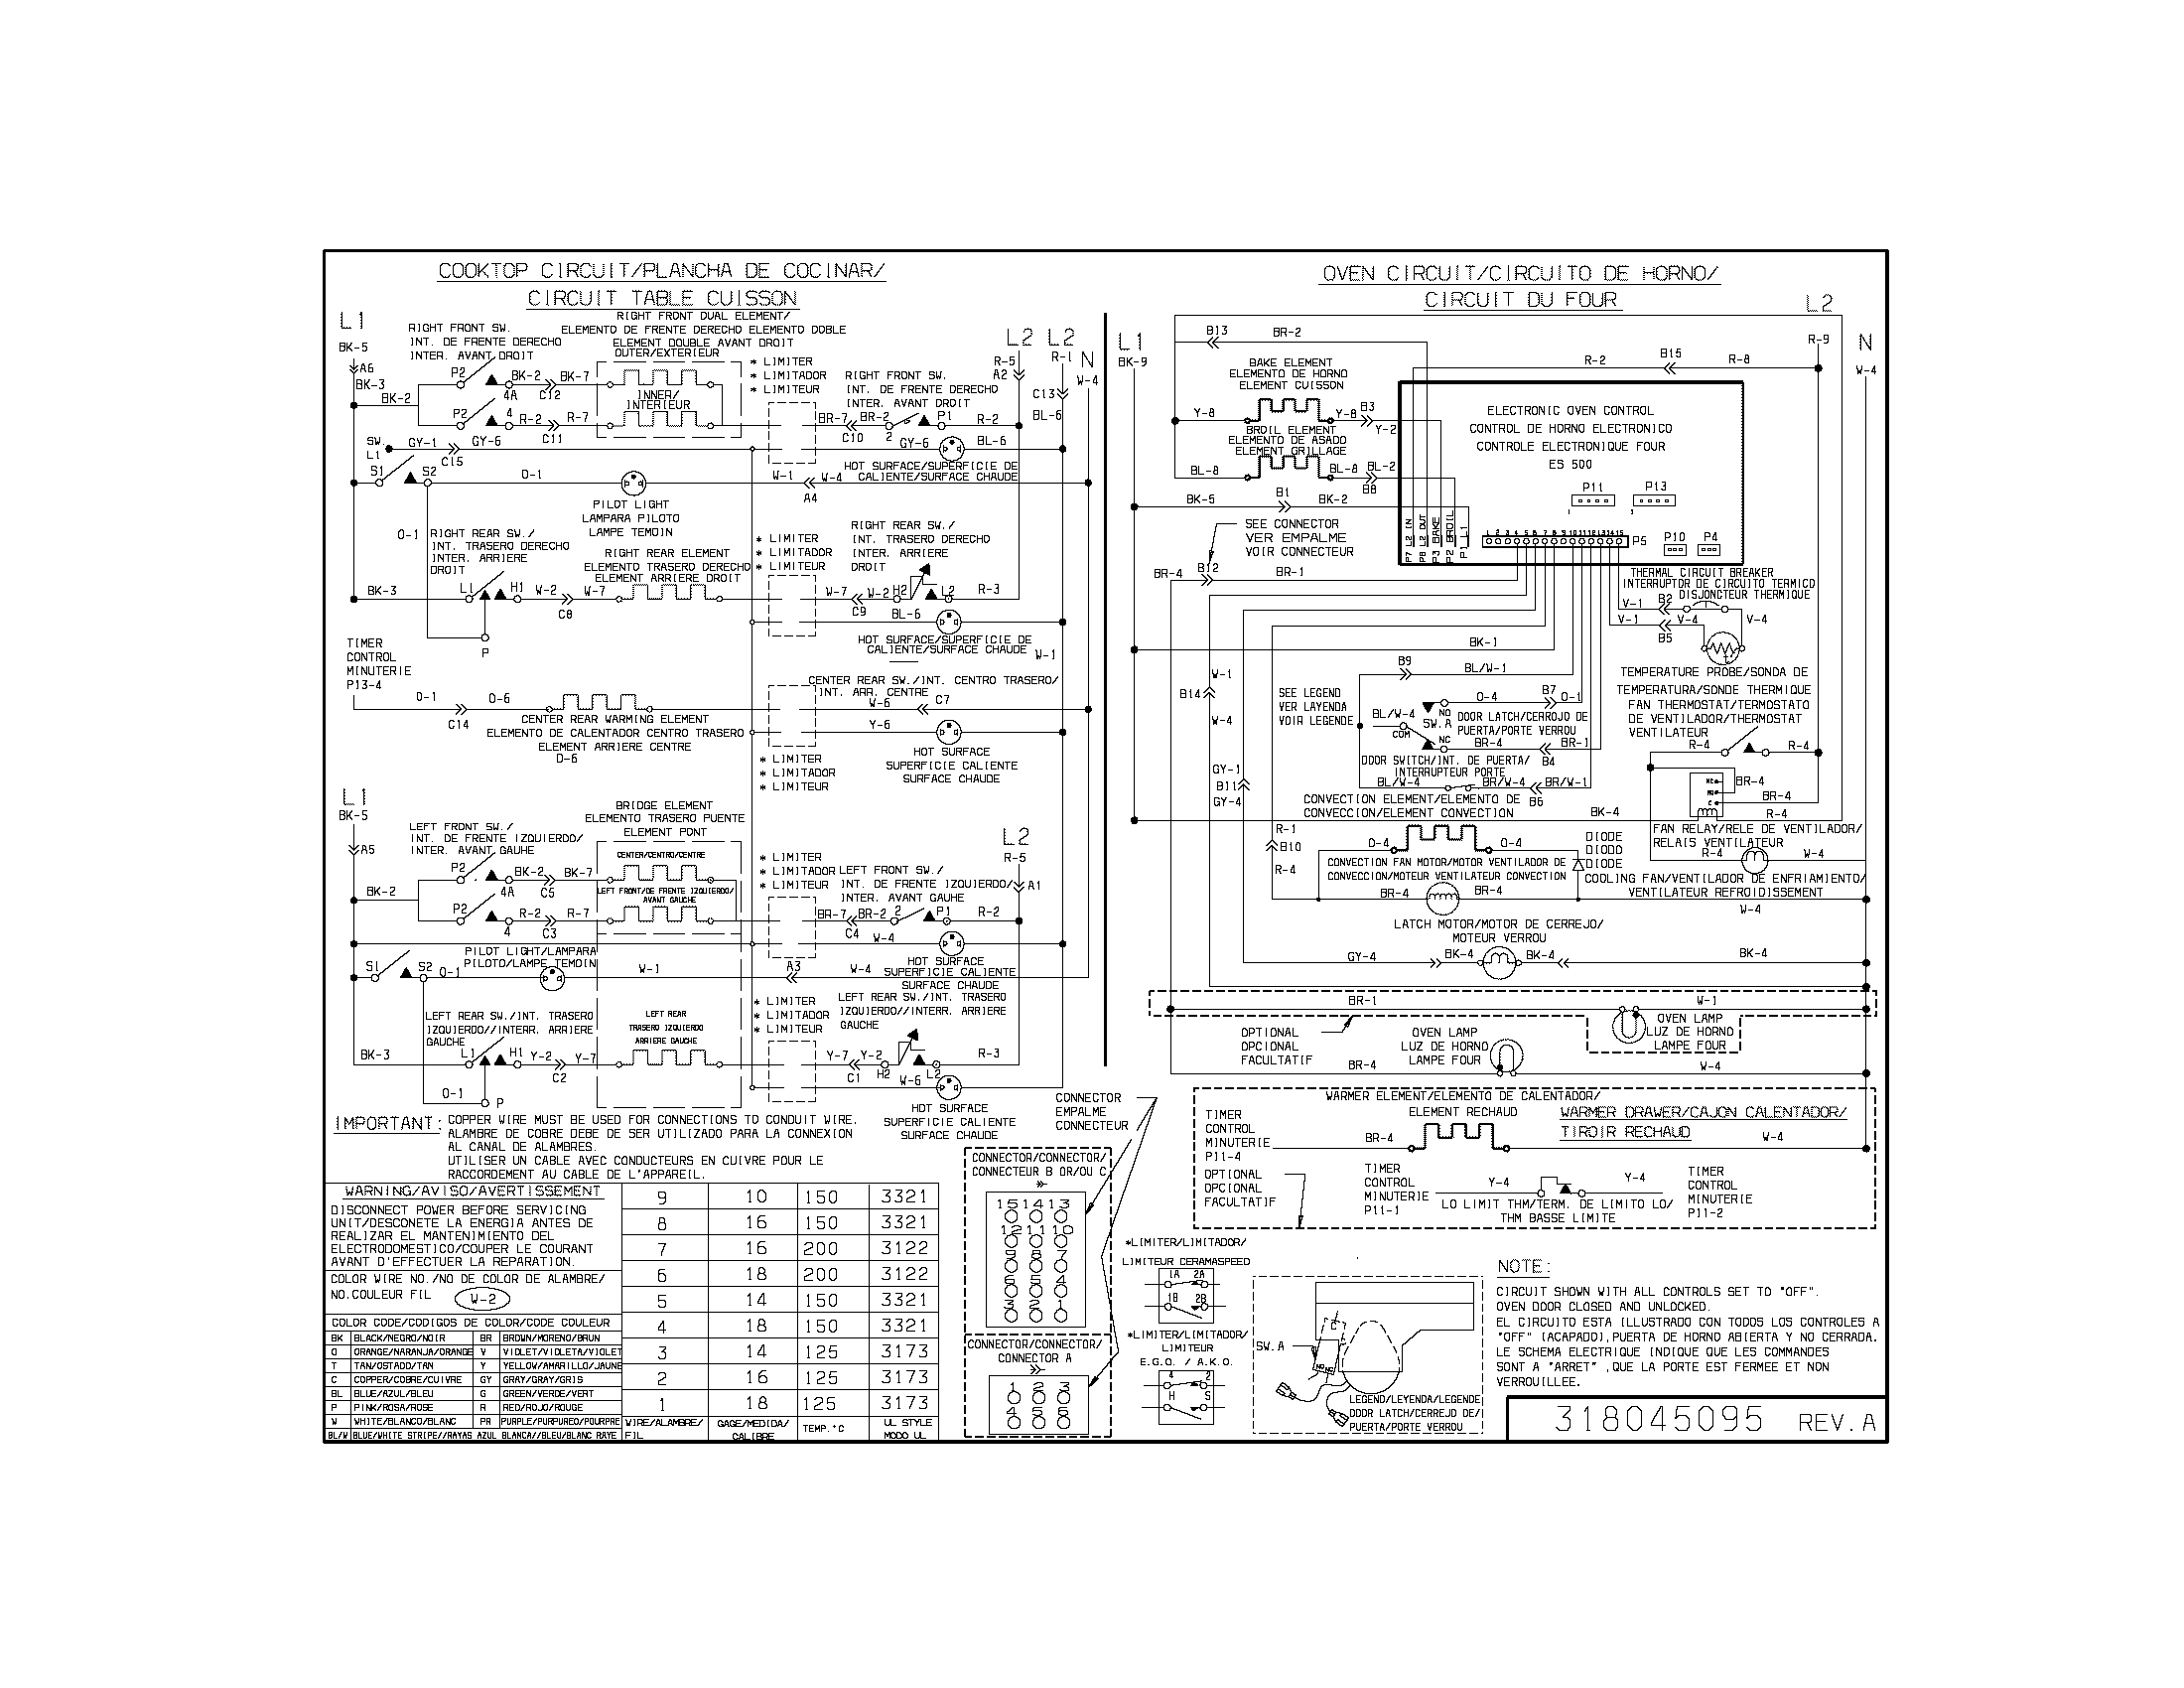 kenmore 400 dryer wiring diagram redcat atv parts schematic for whirlpool schematics